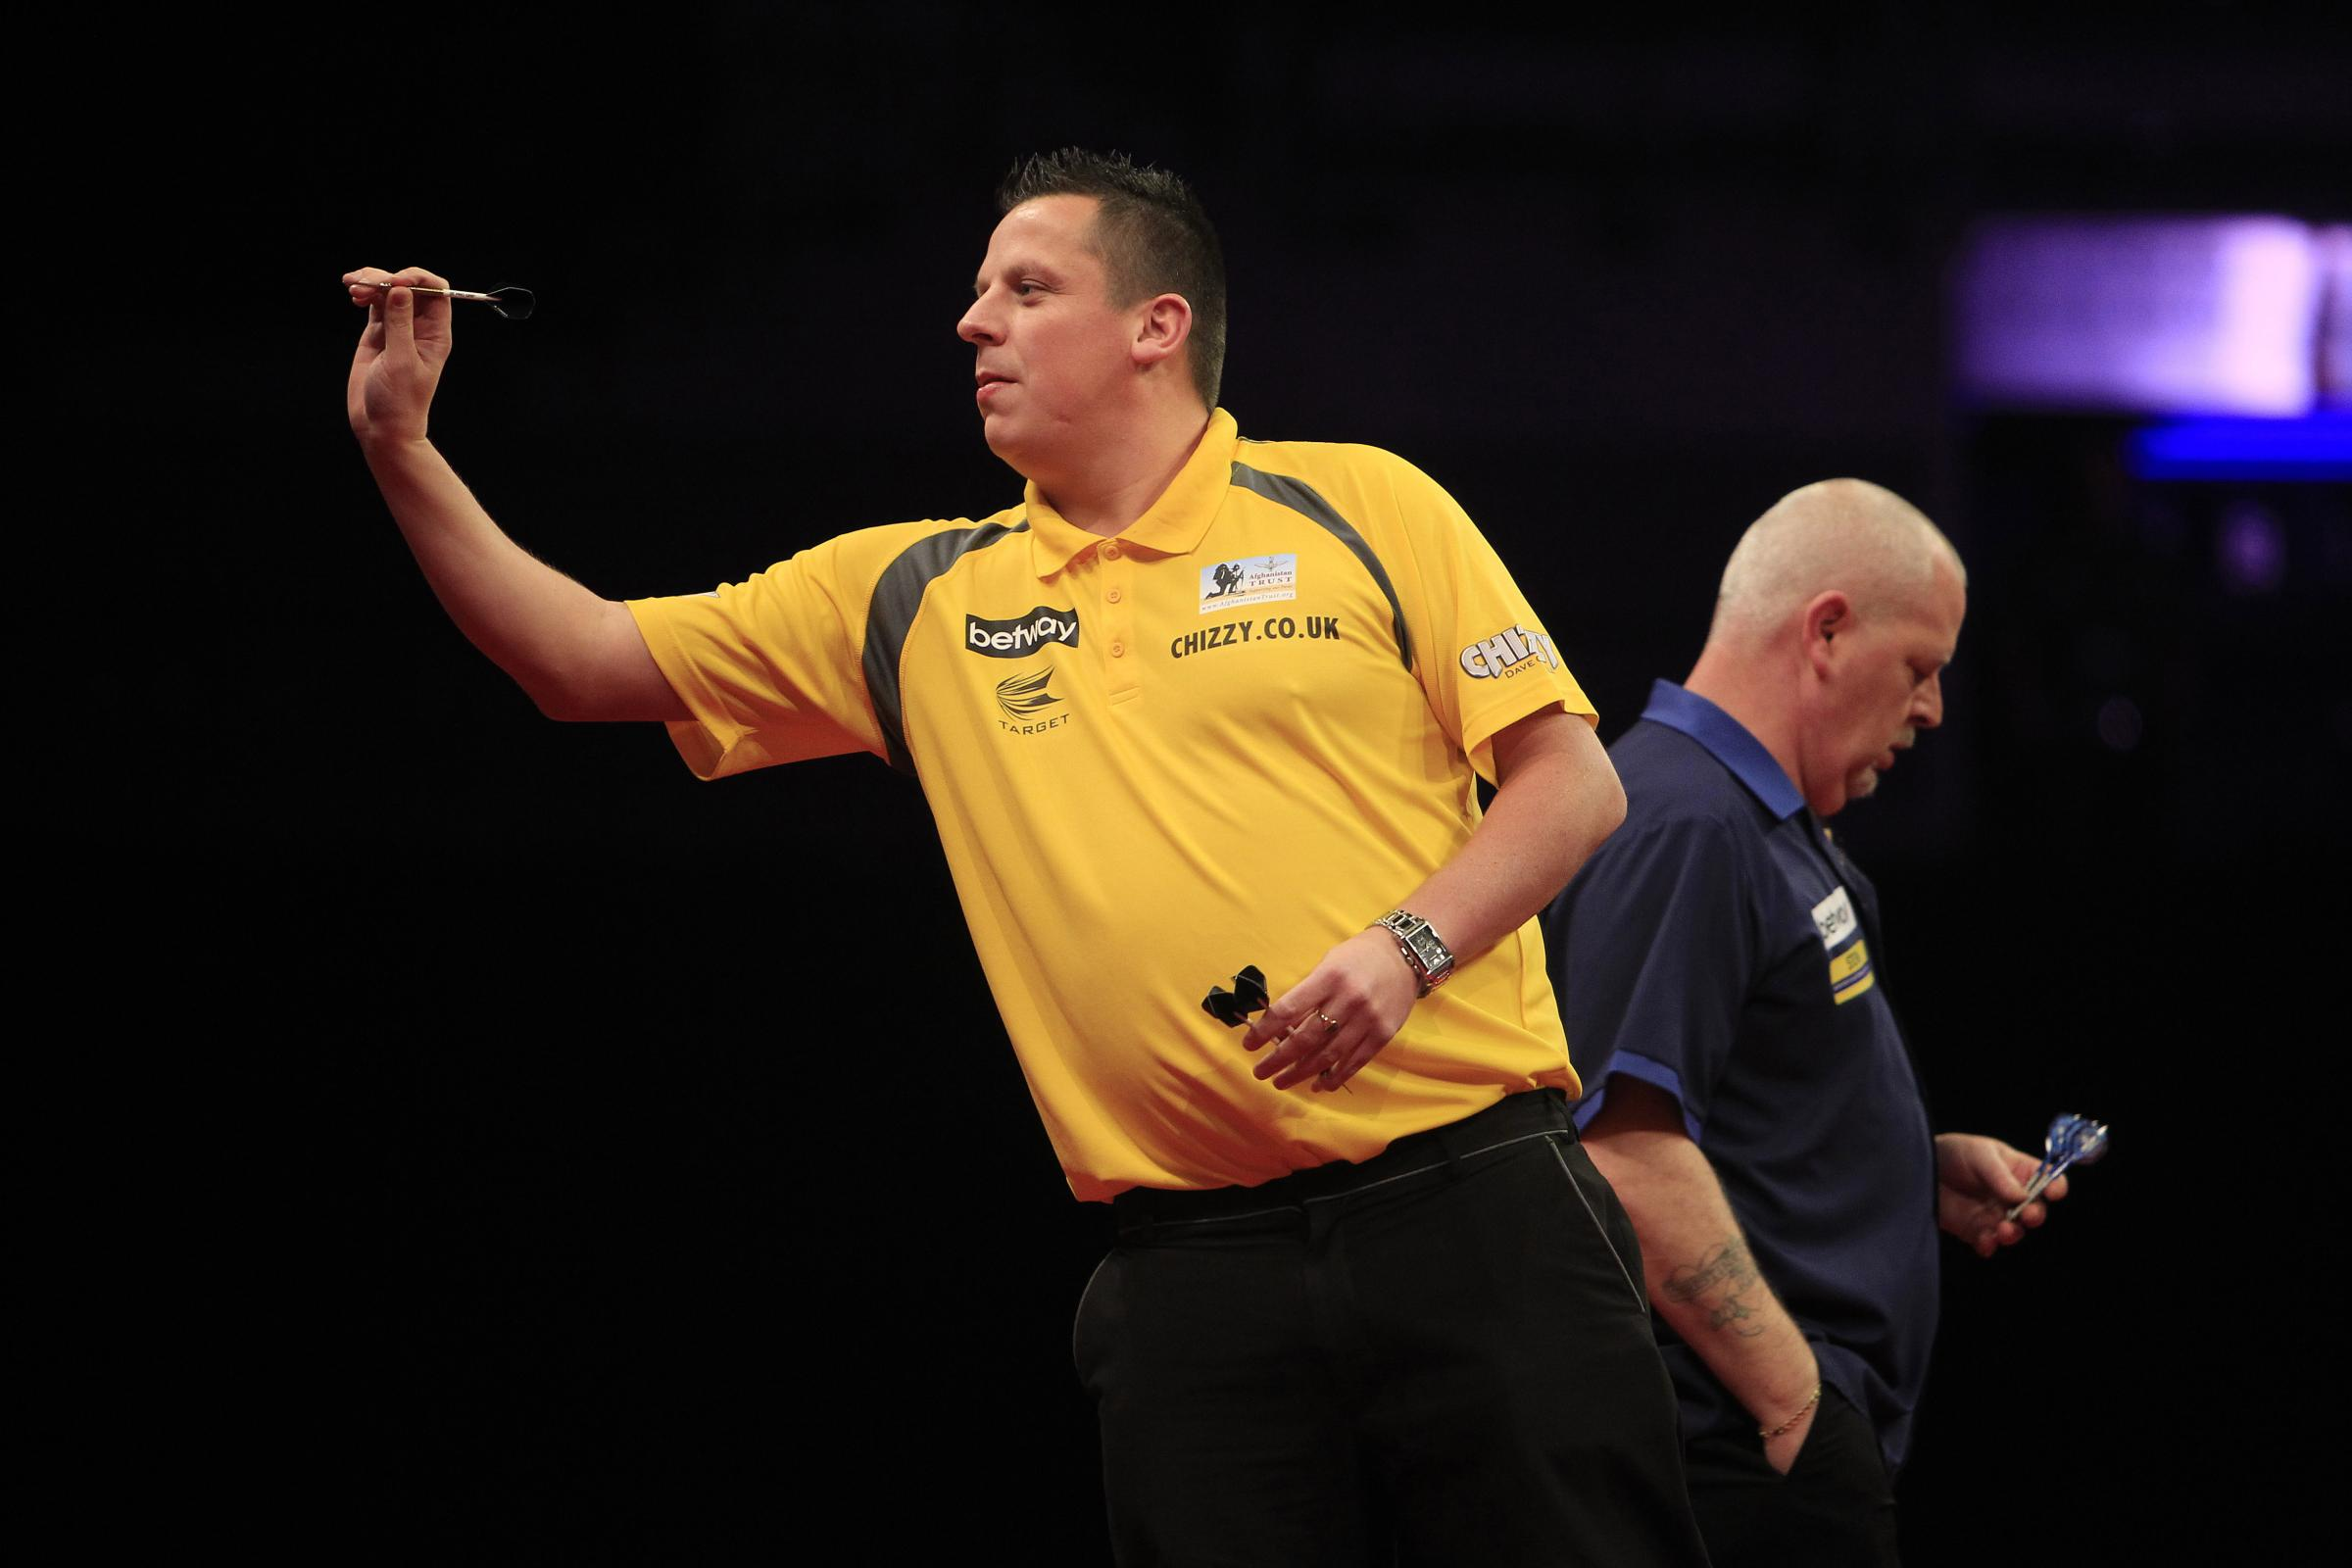 Dave Chisnall in action last week in Liverpool